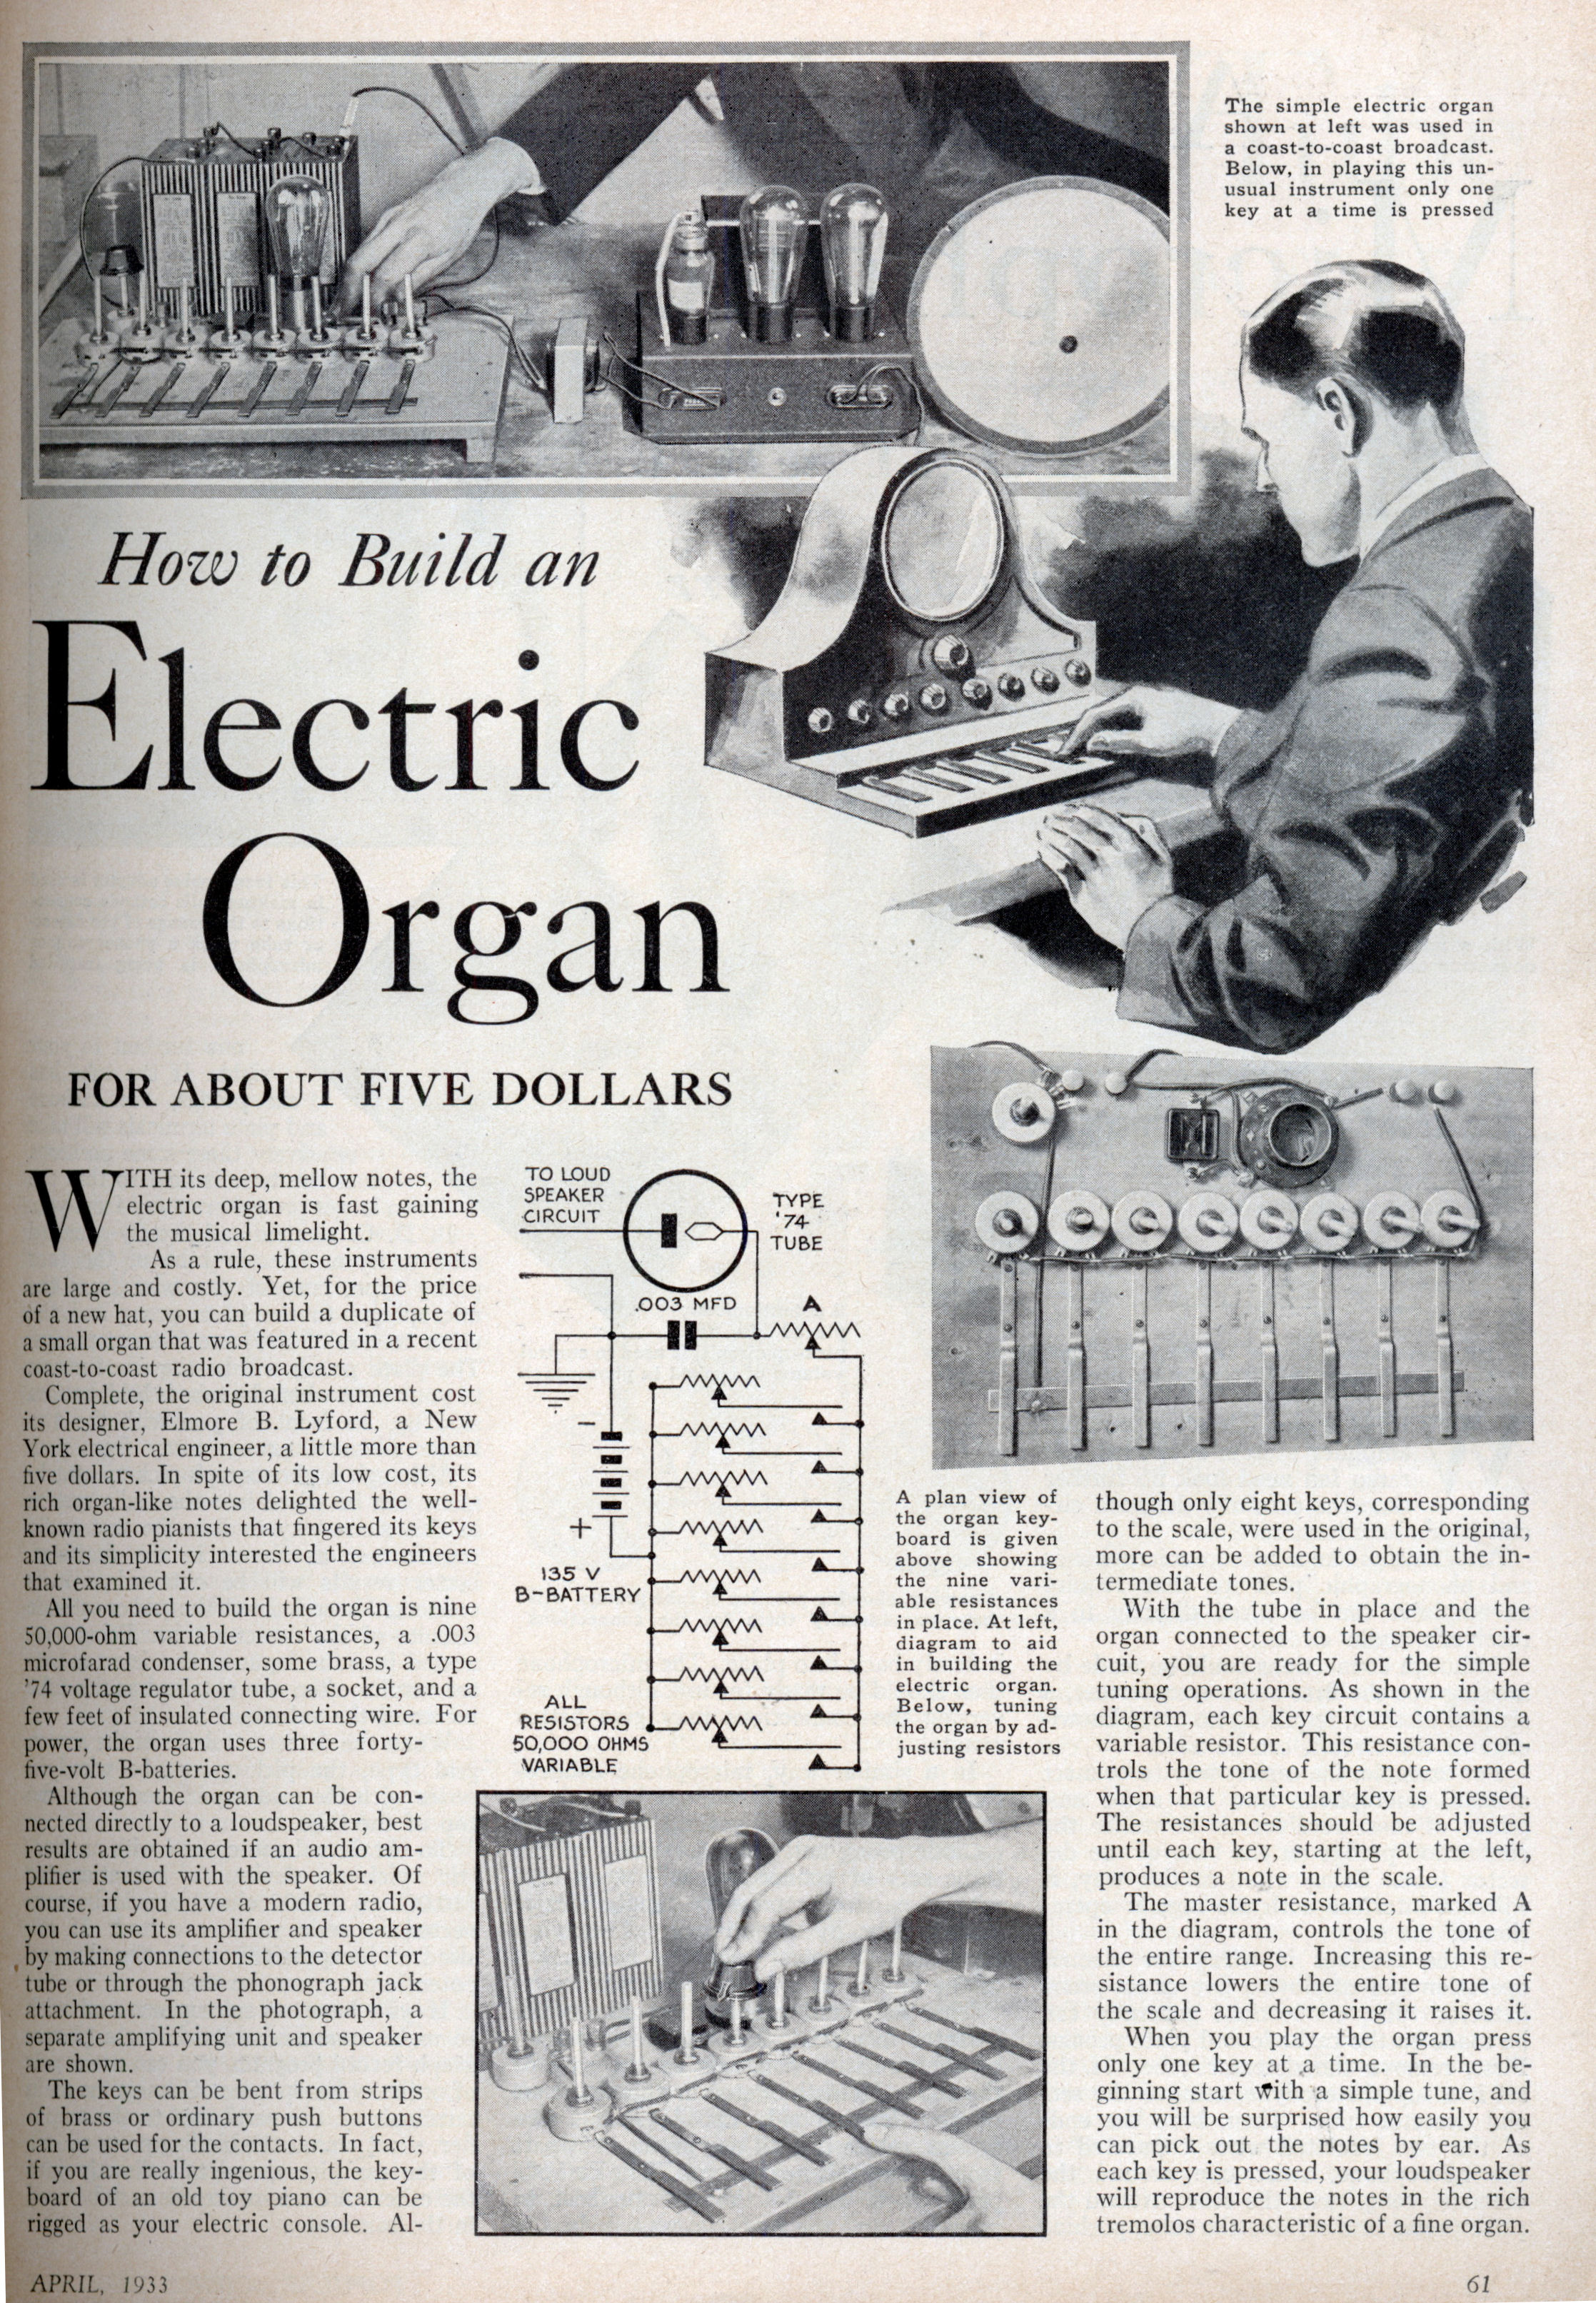 How To Build An Electric Organ For About Five Dollars Modern Mechanix Circuit Diagram Schematic Likewise Toy 555 Timer Apr 1933